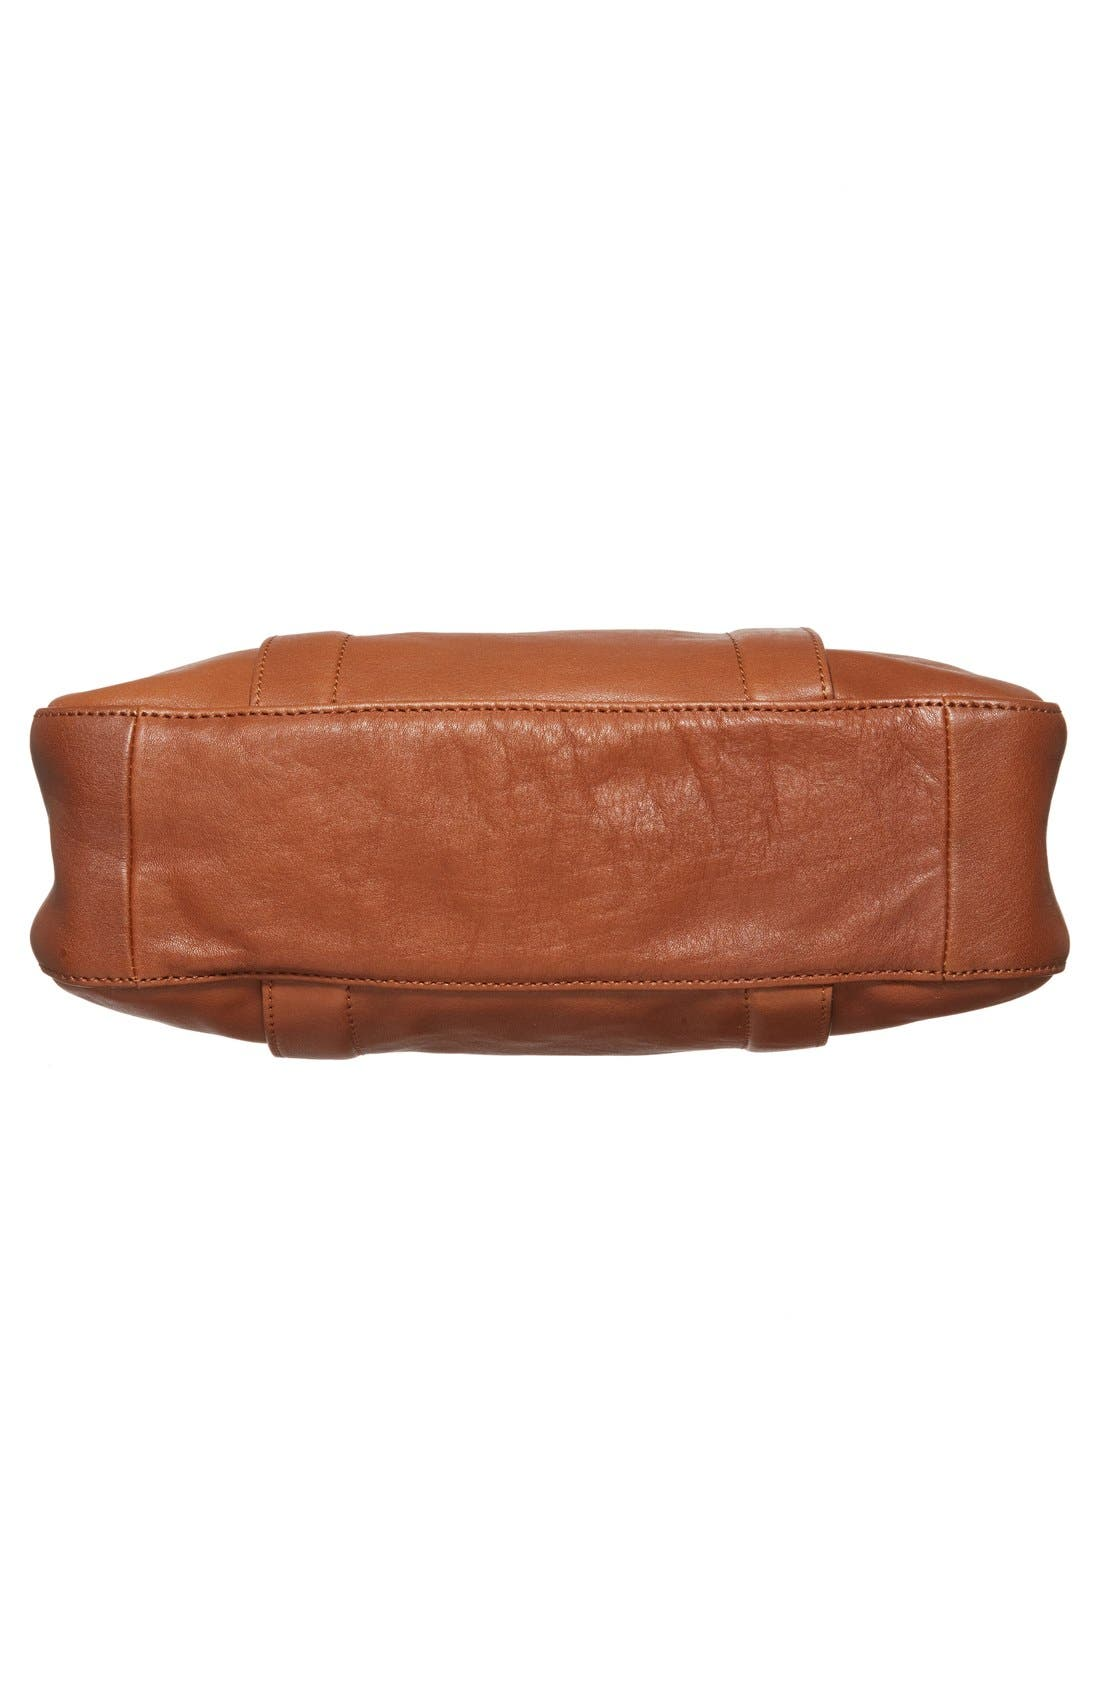 'Small3D' Leather Tote,                             Alternate thumbnail 6, color,                             Cognac